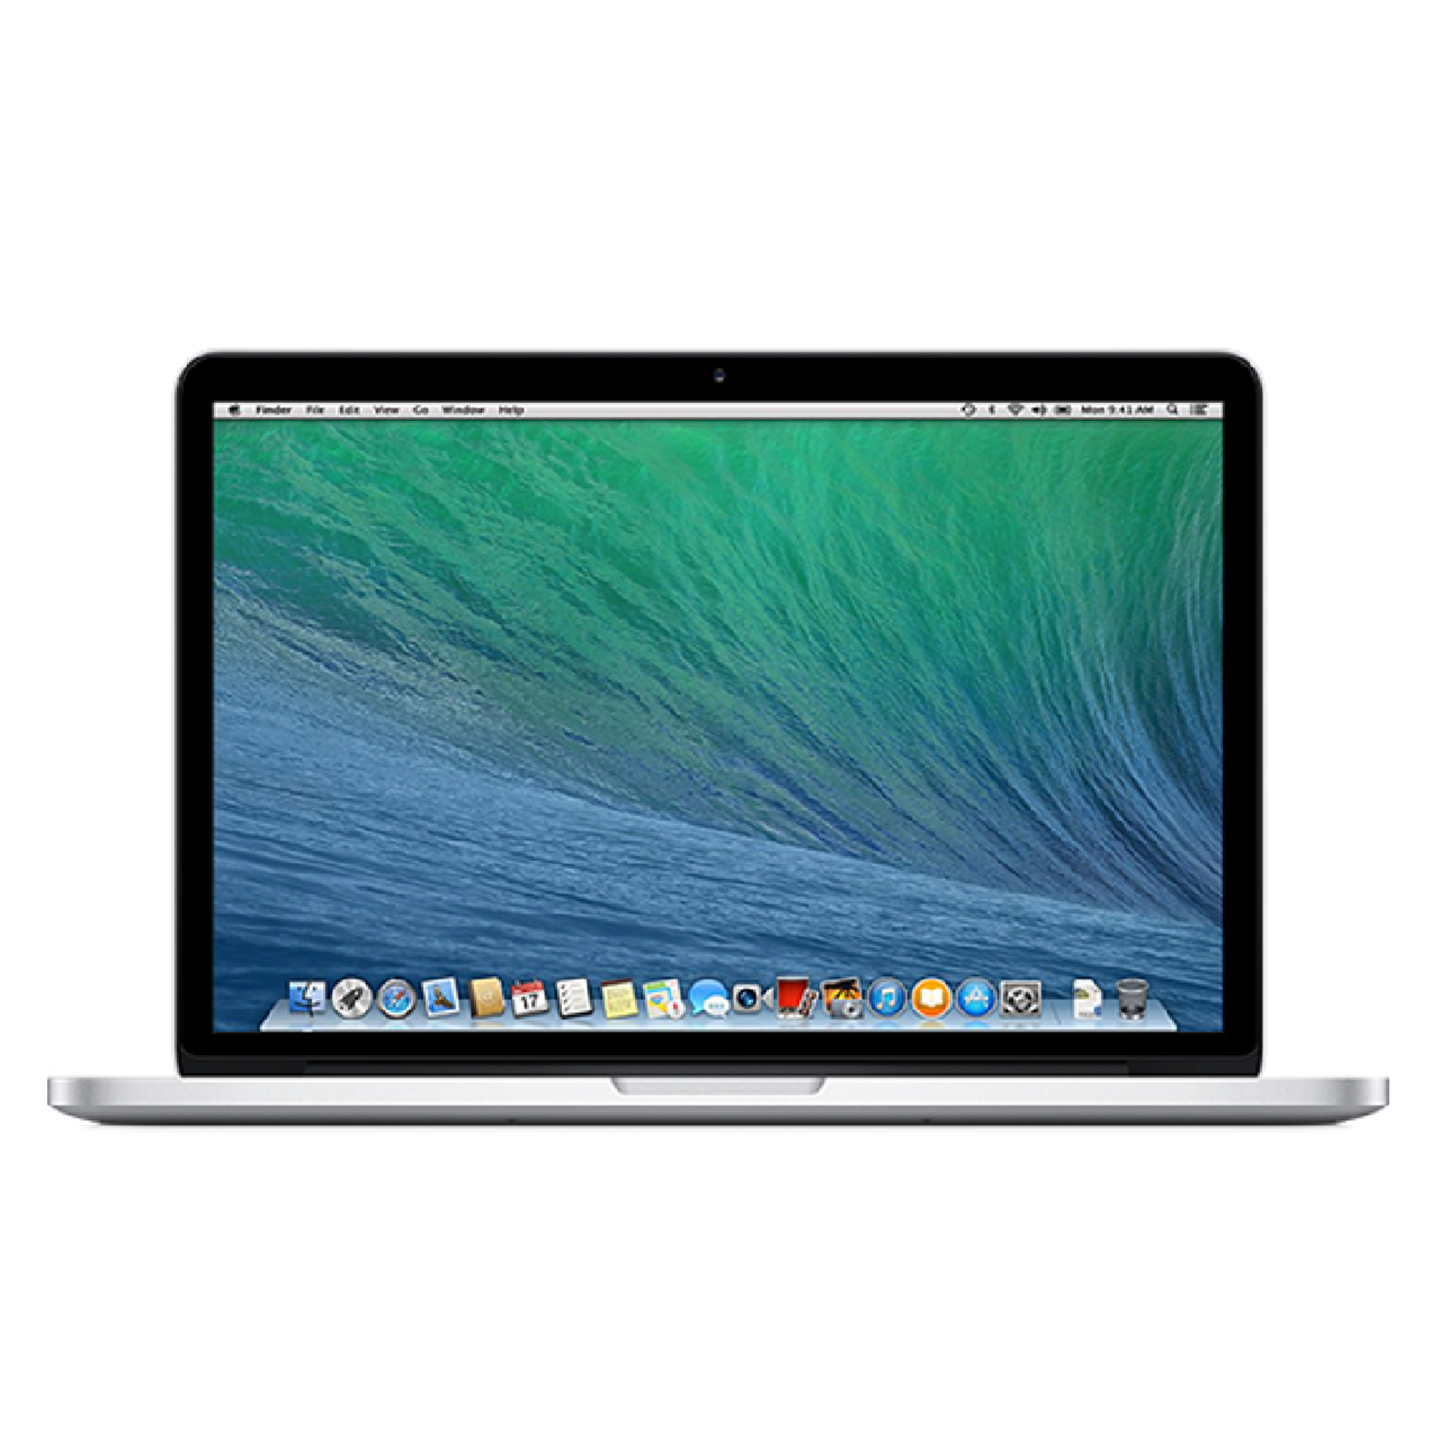 MacBook Pro (Retina, 13-inch, Late 2013)Core i5/8GB/SSD256GB E795